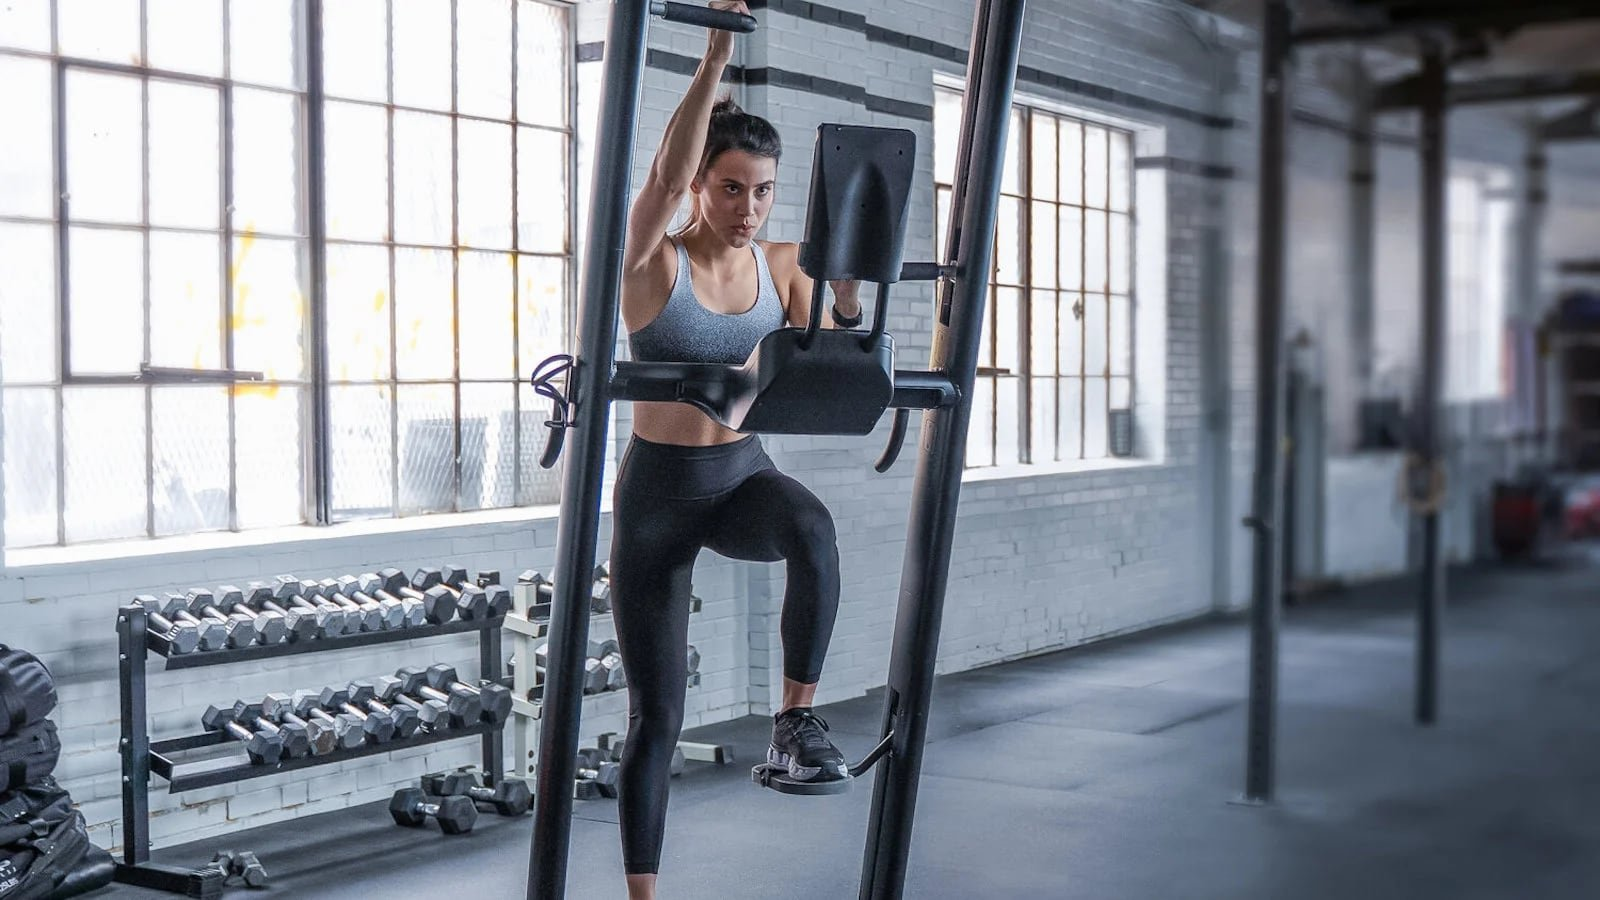 CLMBR Pure workout machine uses a state-of-the-art companion app for exercise details